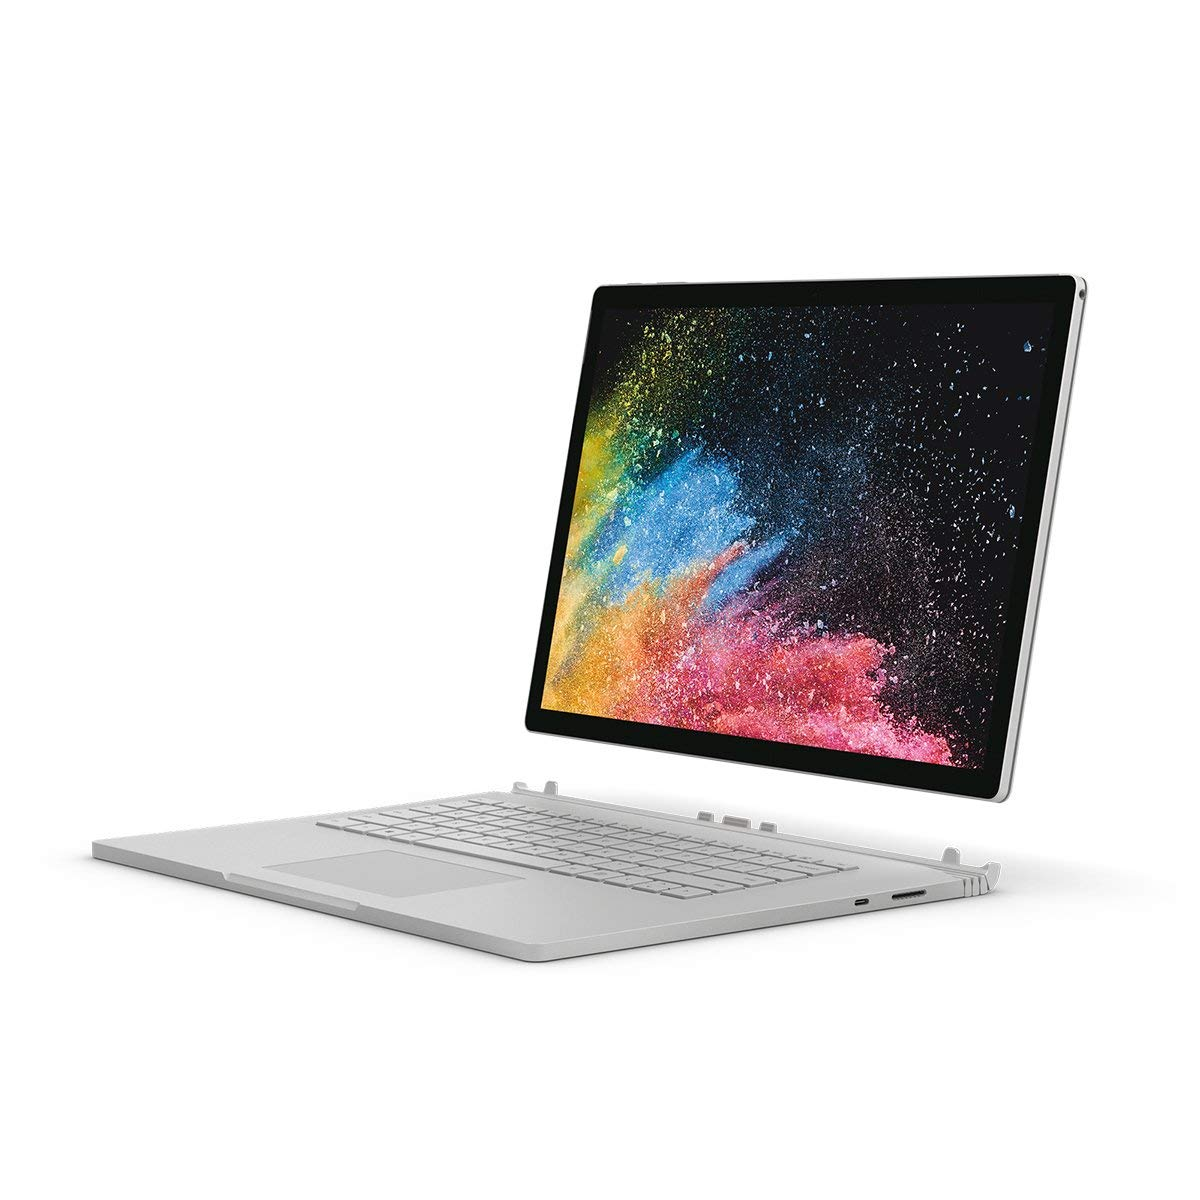 טאבלט Microsoft Surface Book 2 Core i7 1TB SSD 16GB RAM NVIDIA GeForce 6GB מיקרוסופט